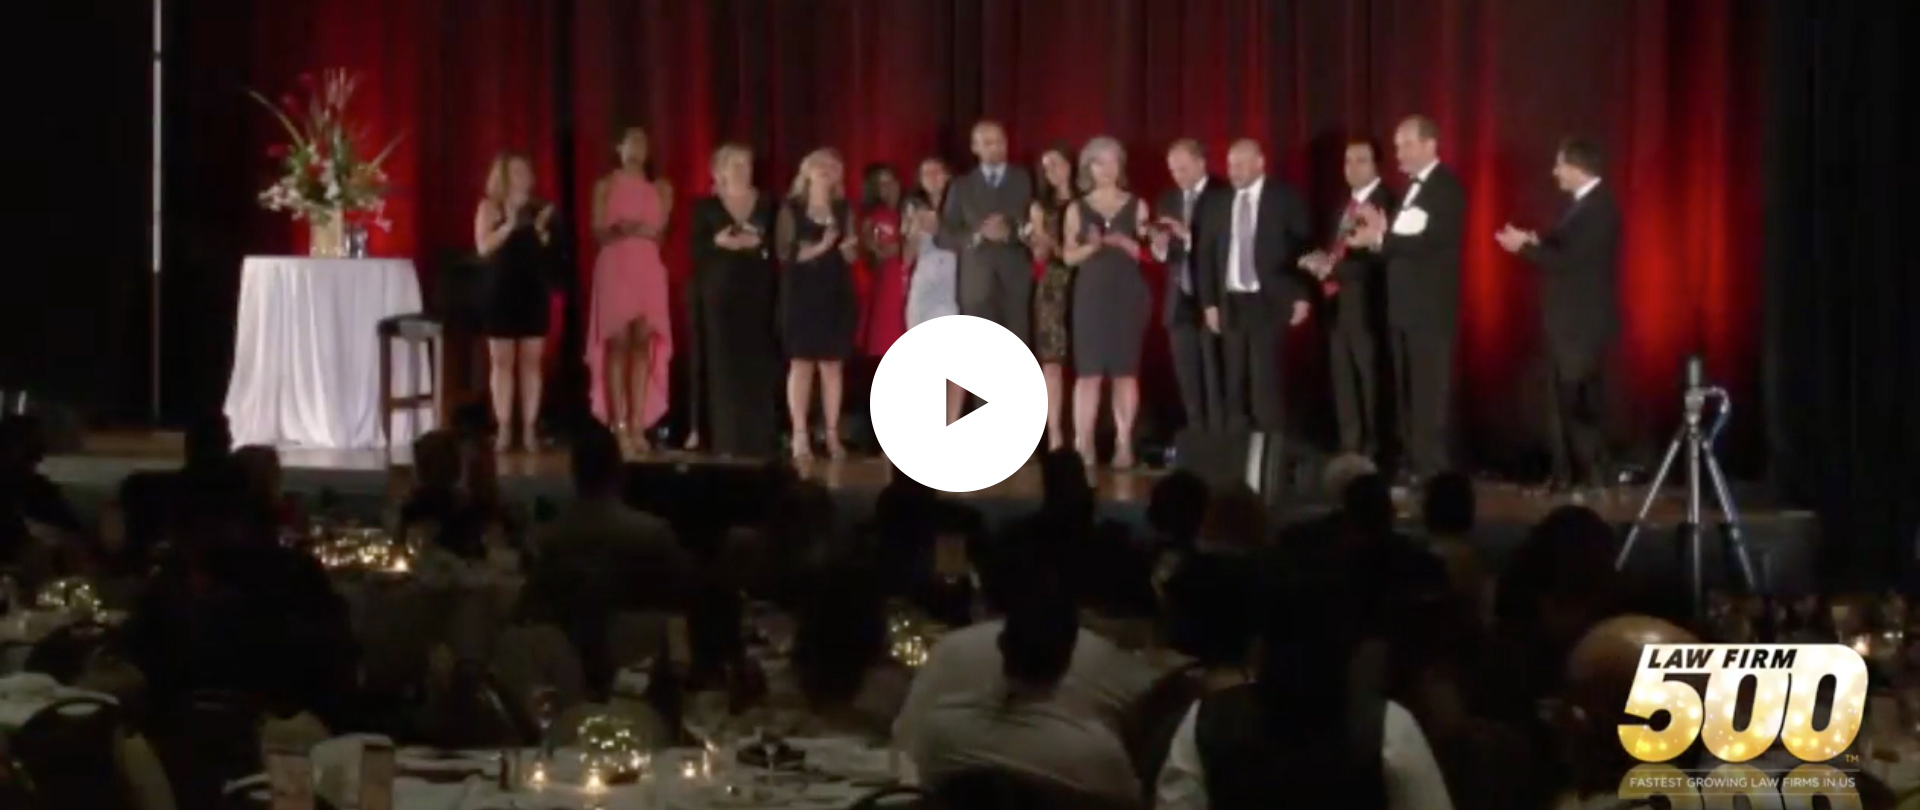 Video: Meltzer & Bell Accept the 2017  Law Firm 500 Award for #1 Fastest  Growing Law Firm